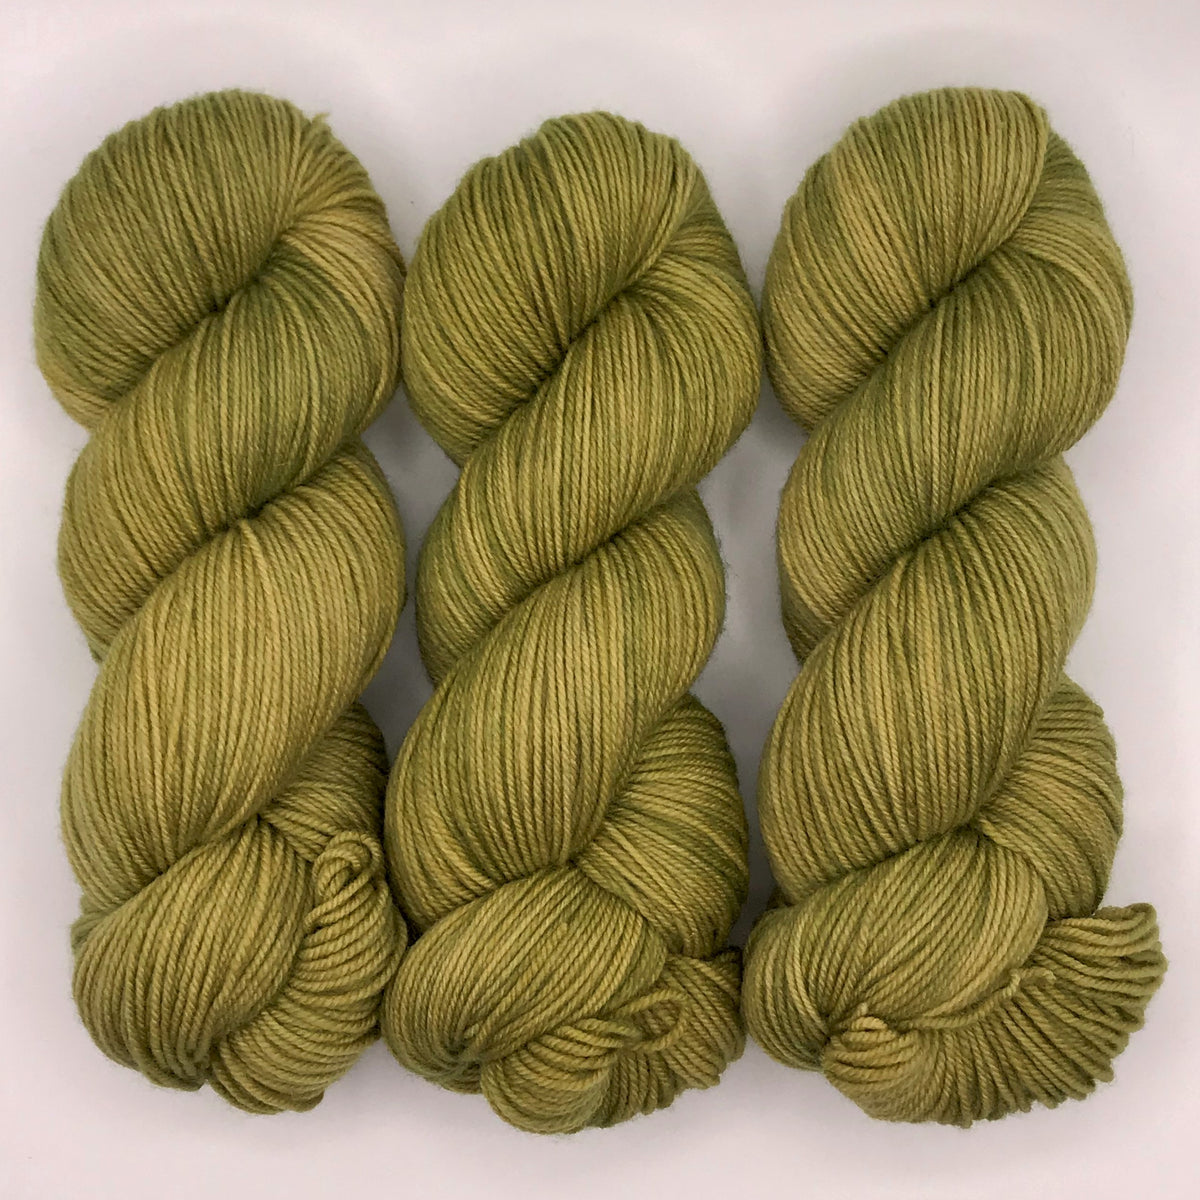 Anjou - Revival Fingering - Dyed Stock